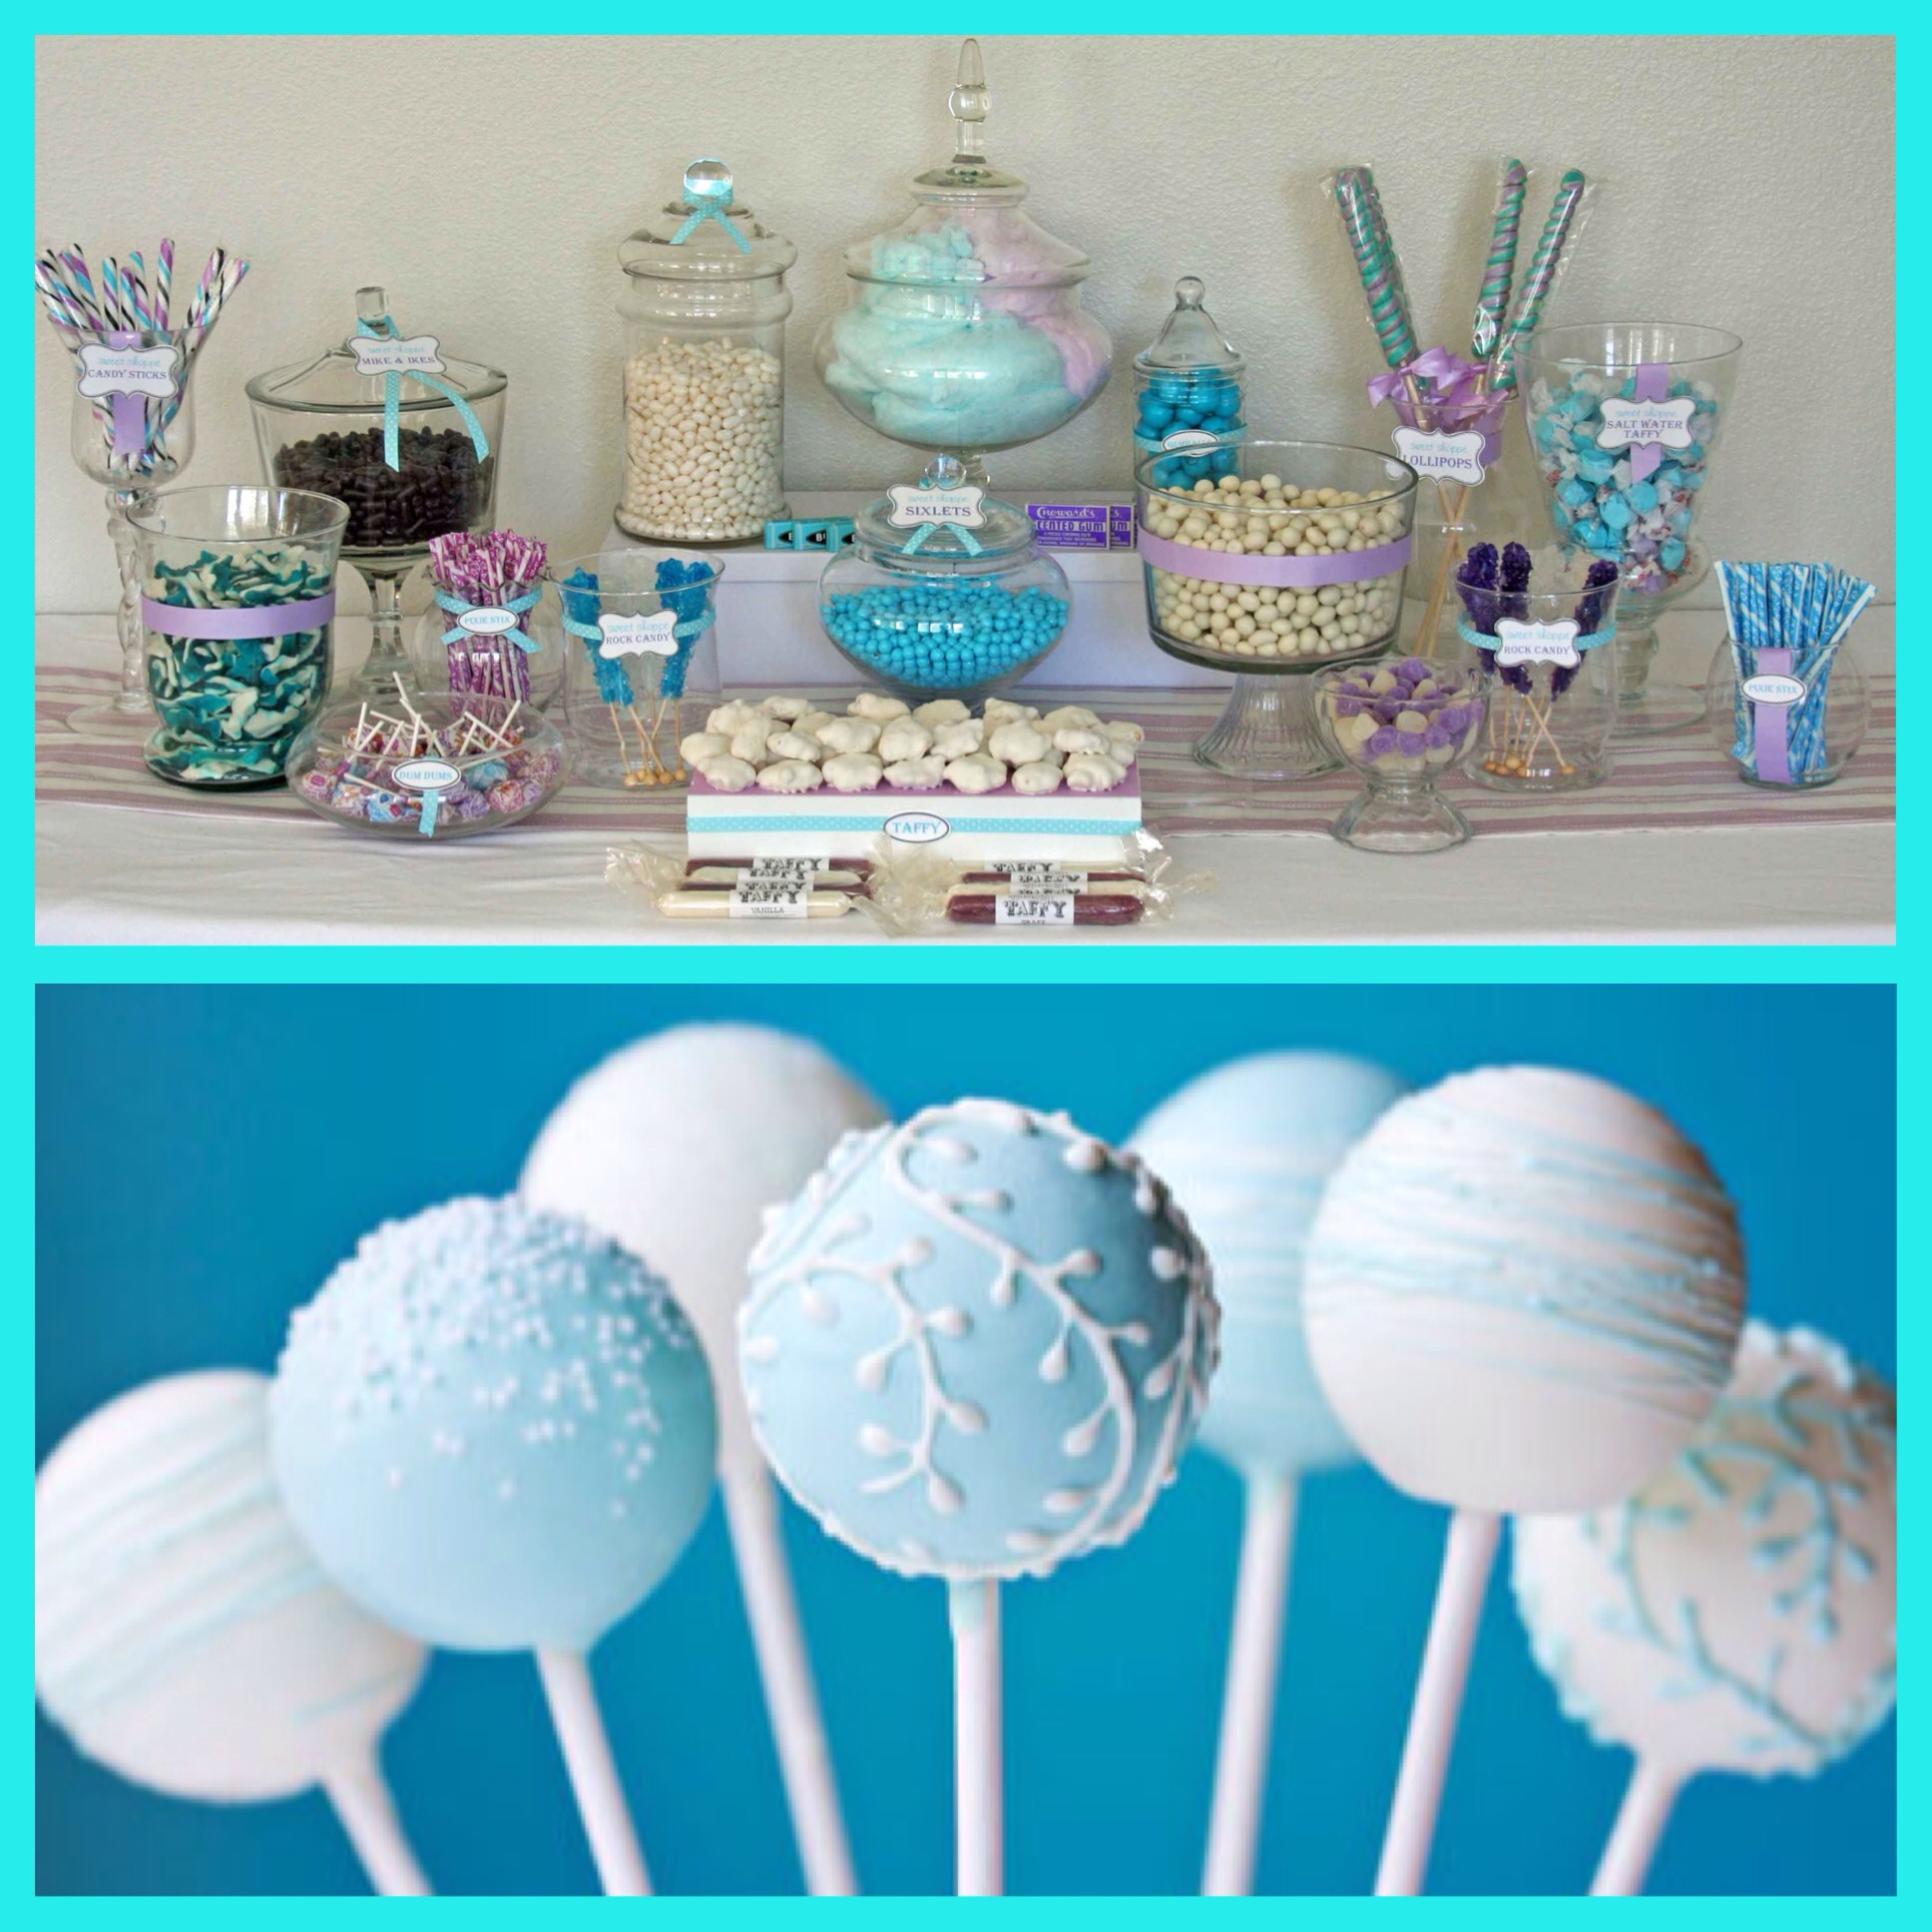 winter carnival themed candy buffet, winter themed cake pops